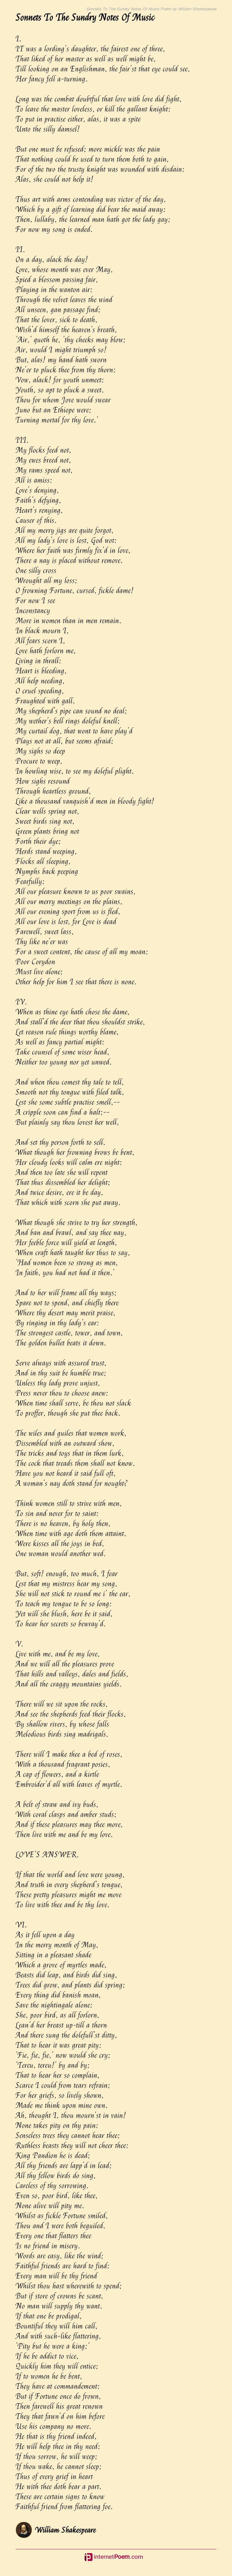 Sonnets To The Sundry Notes Of Music Poem by William